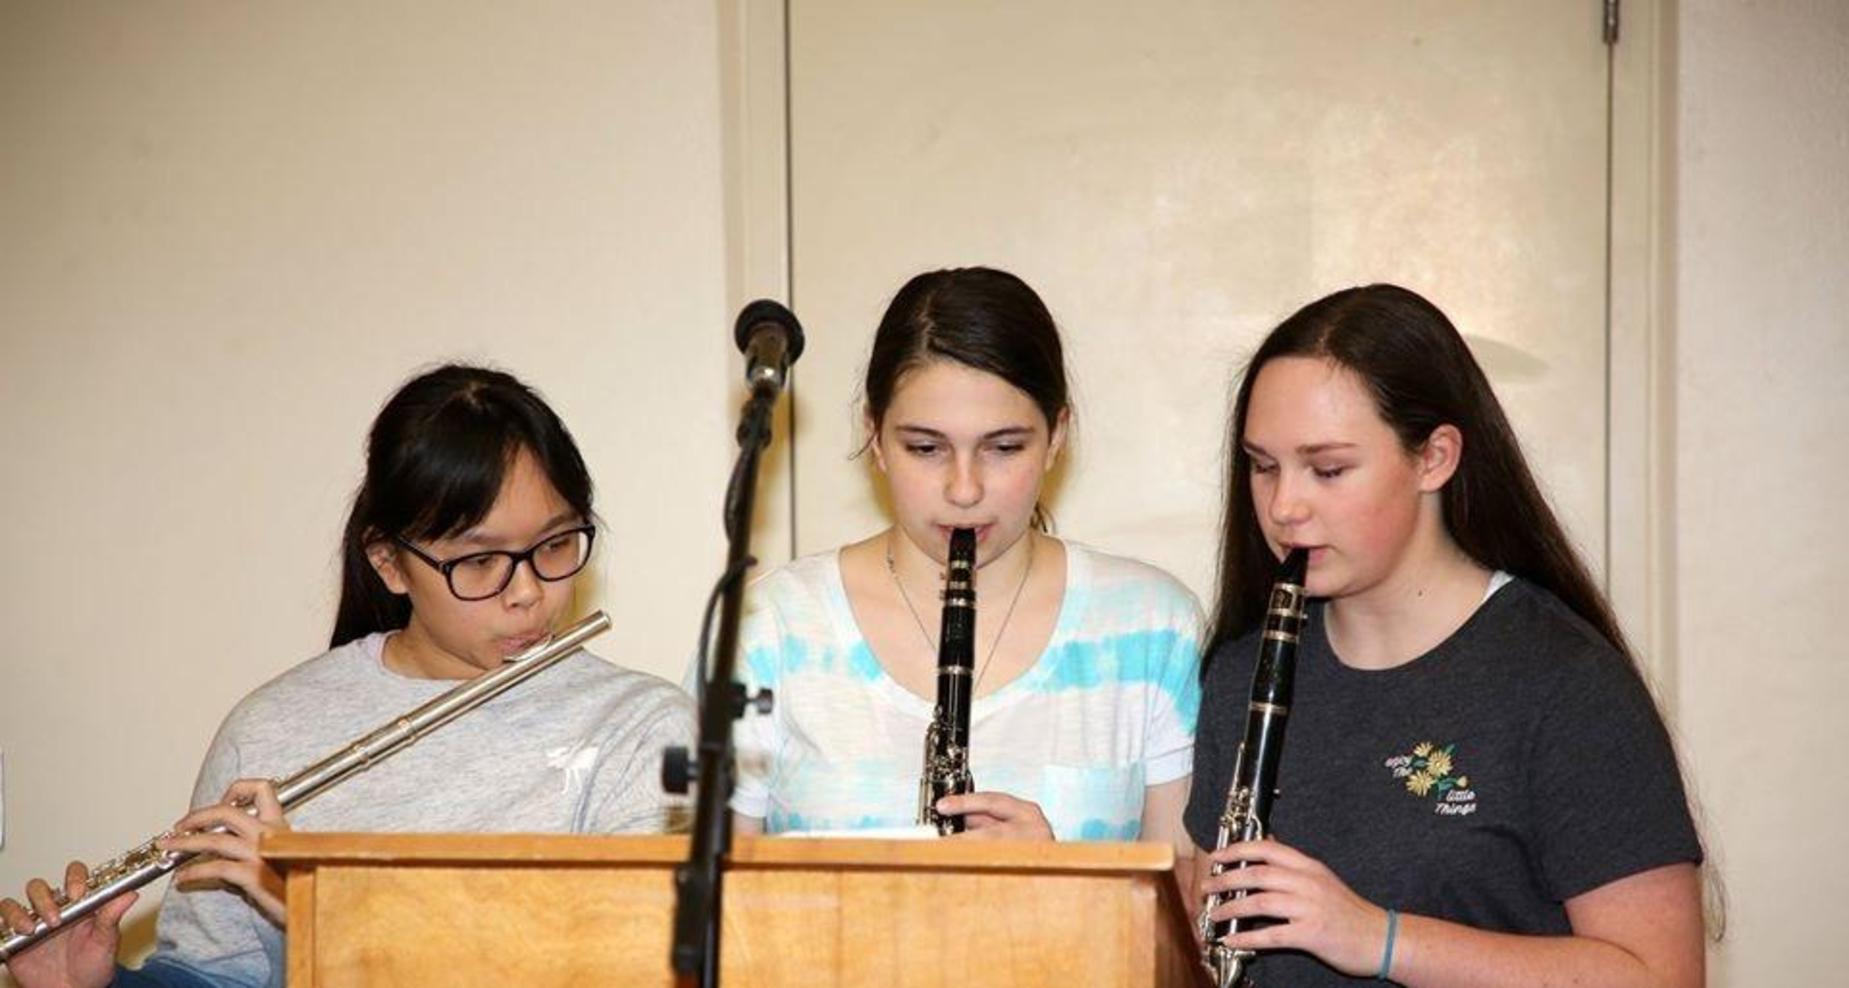 Sandstone Students playing musical notes.